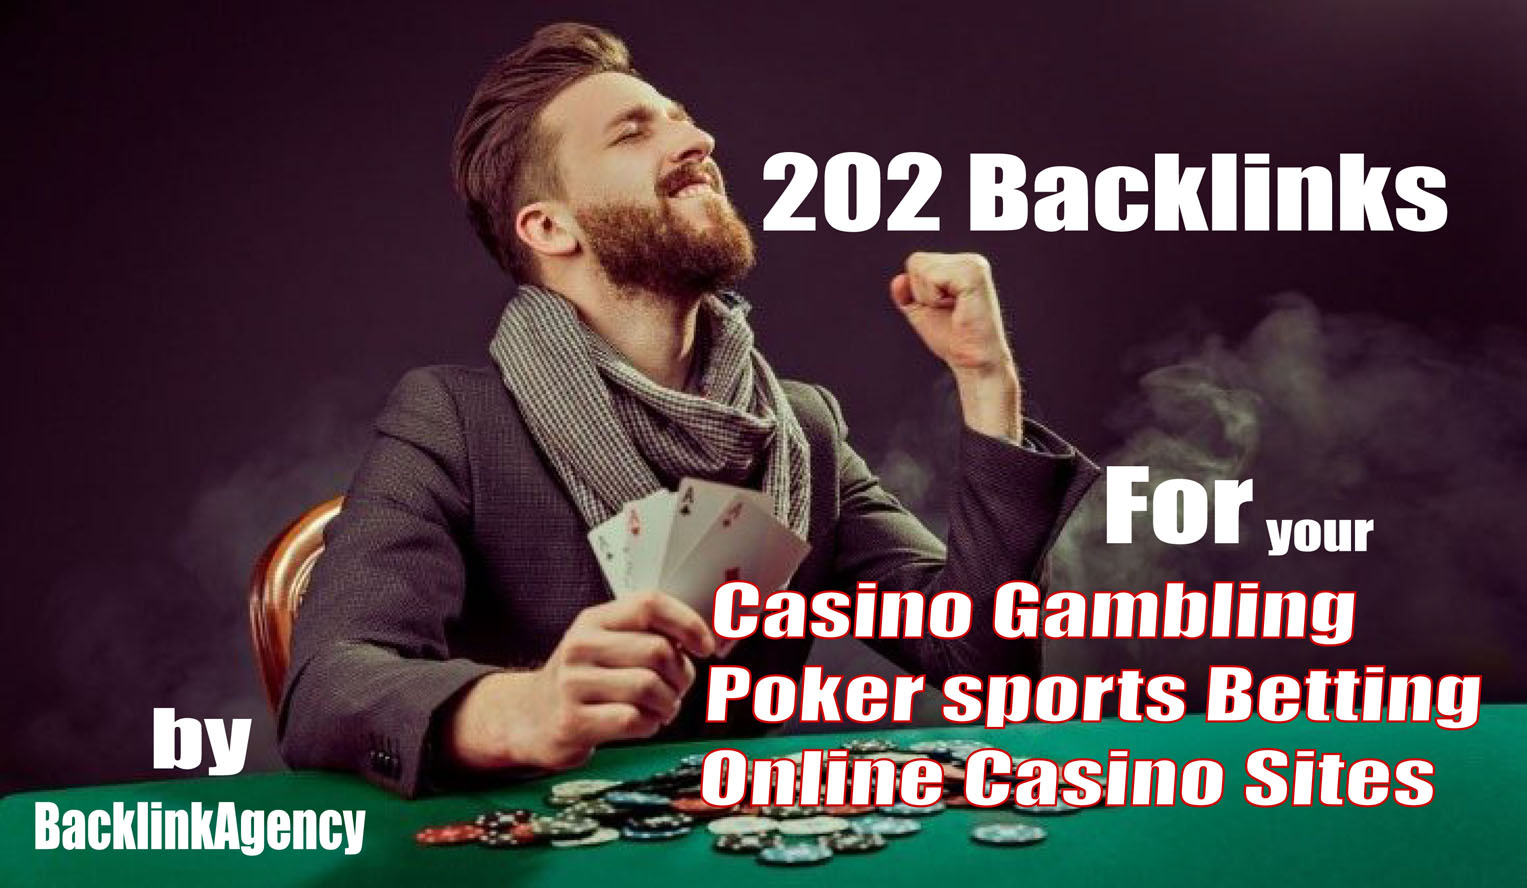 202 Backlinks is enough for Casino Gambling Poker sports Betting